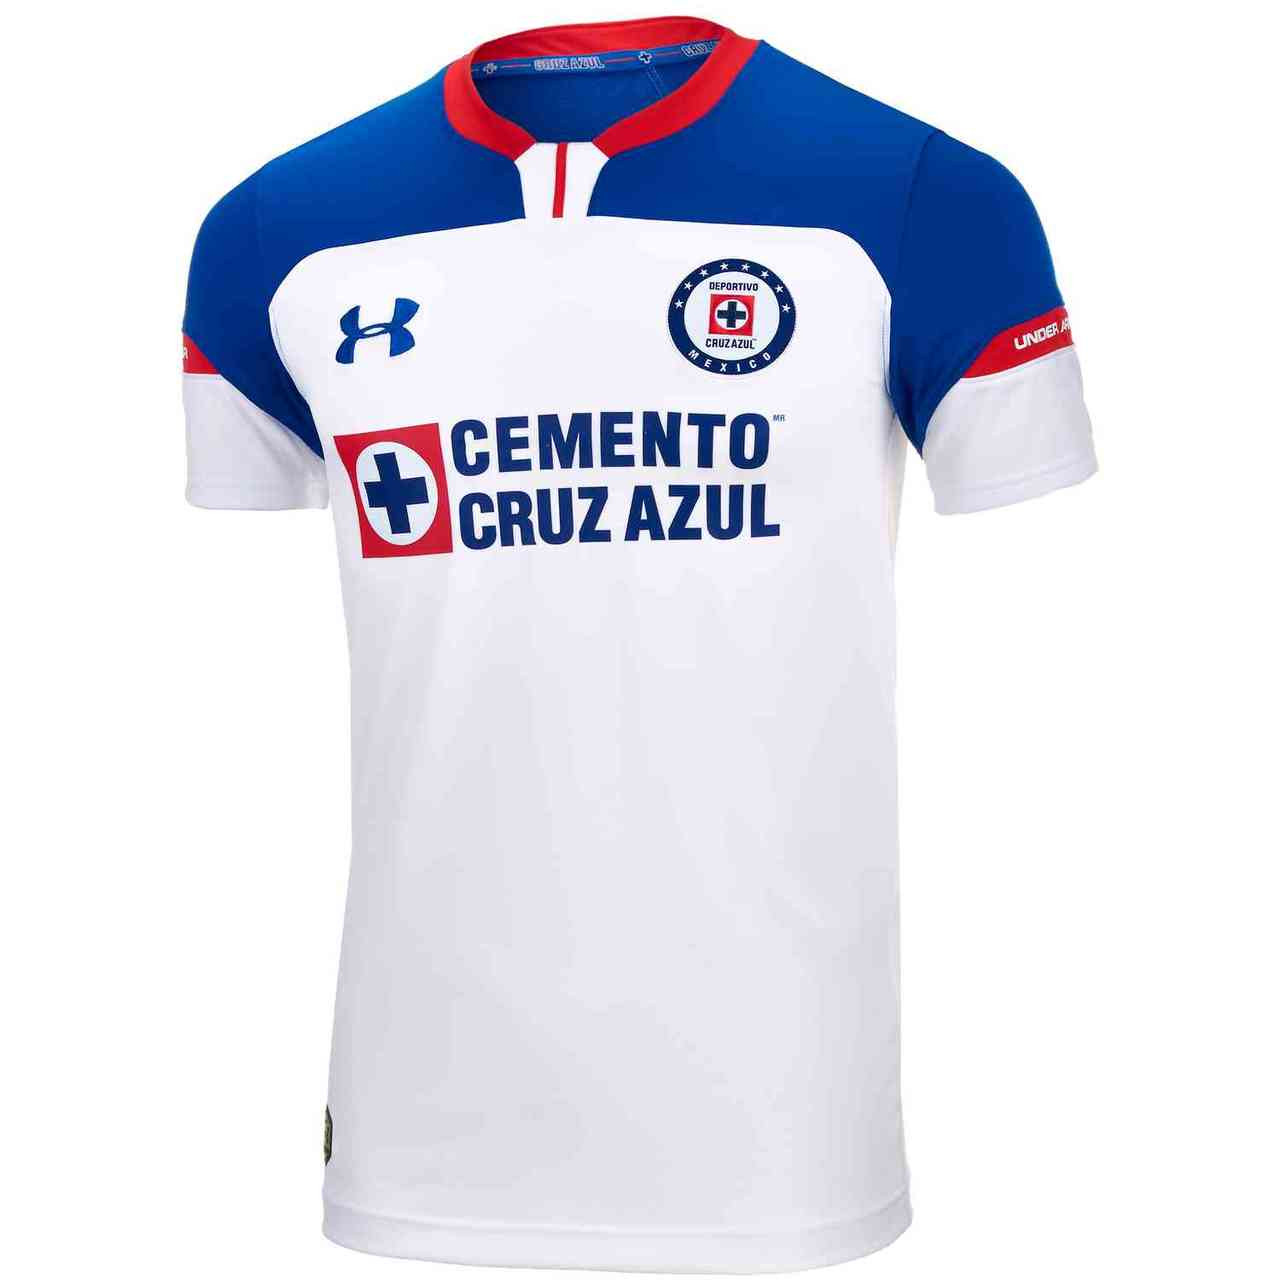 984b54e3 UNDER ARMOUR CRUZ AZUL 2018 AWAY JERSEY WHITE - Soccer Plus